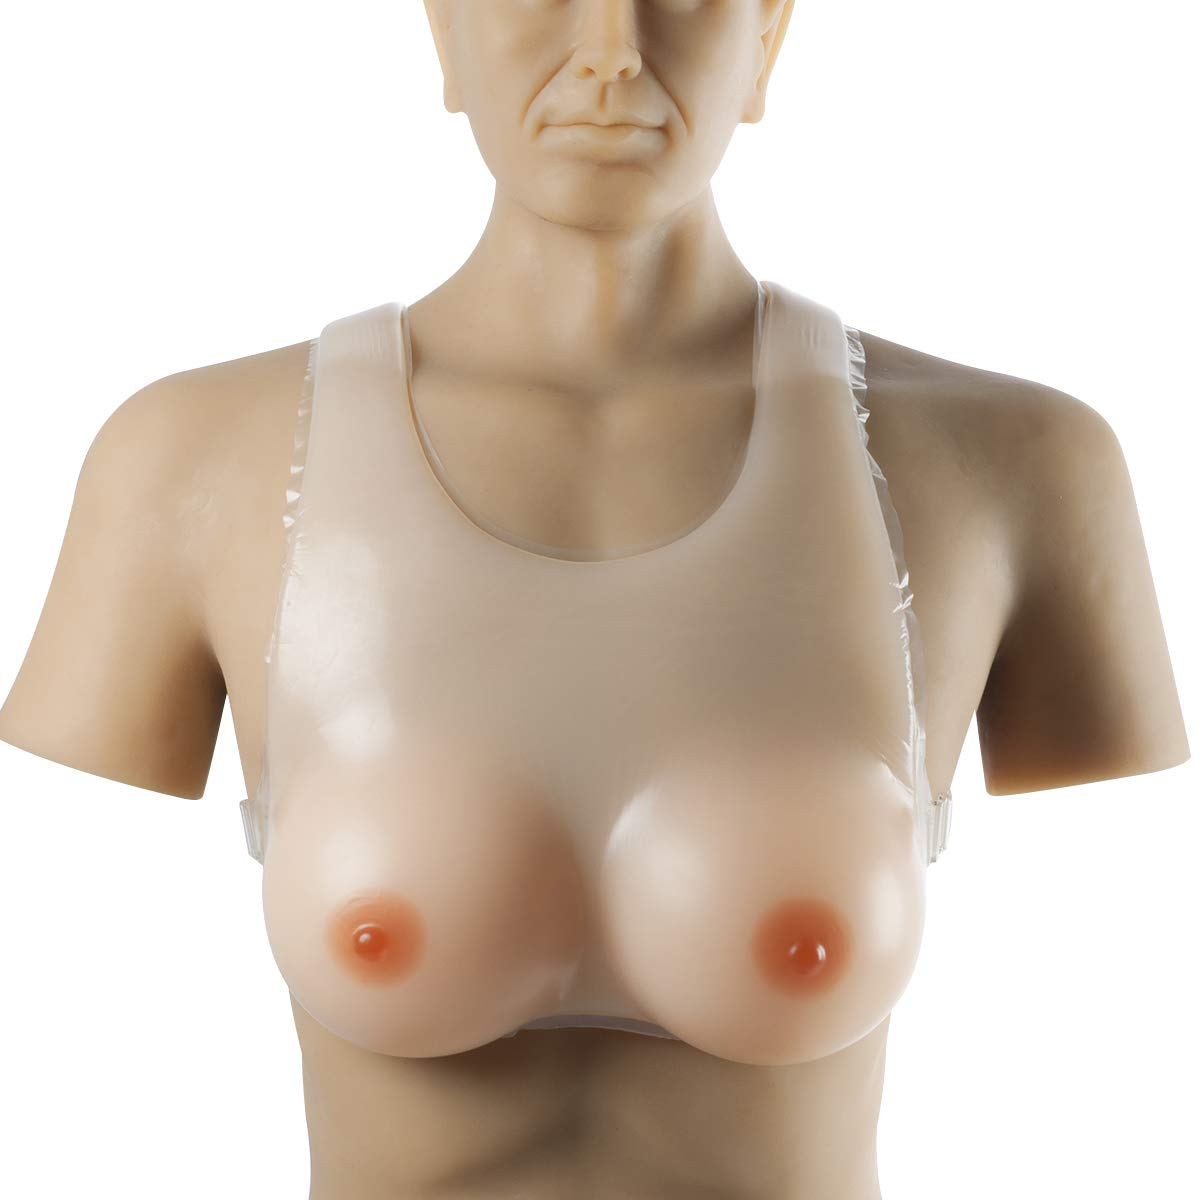 IVITA Silicone Breast Forms Prosthesis Mastectomy Waterdrop CT for Drag Queen